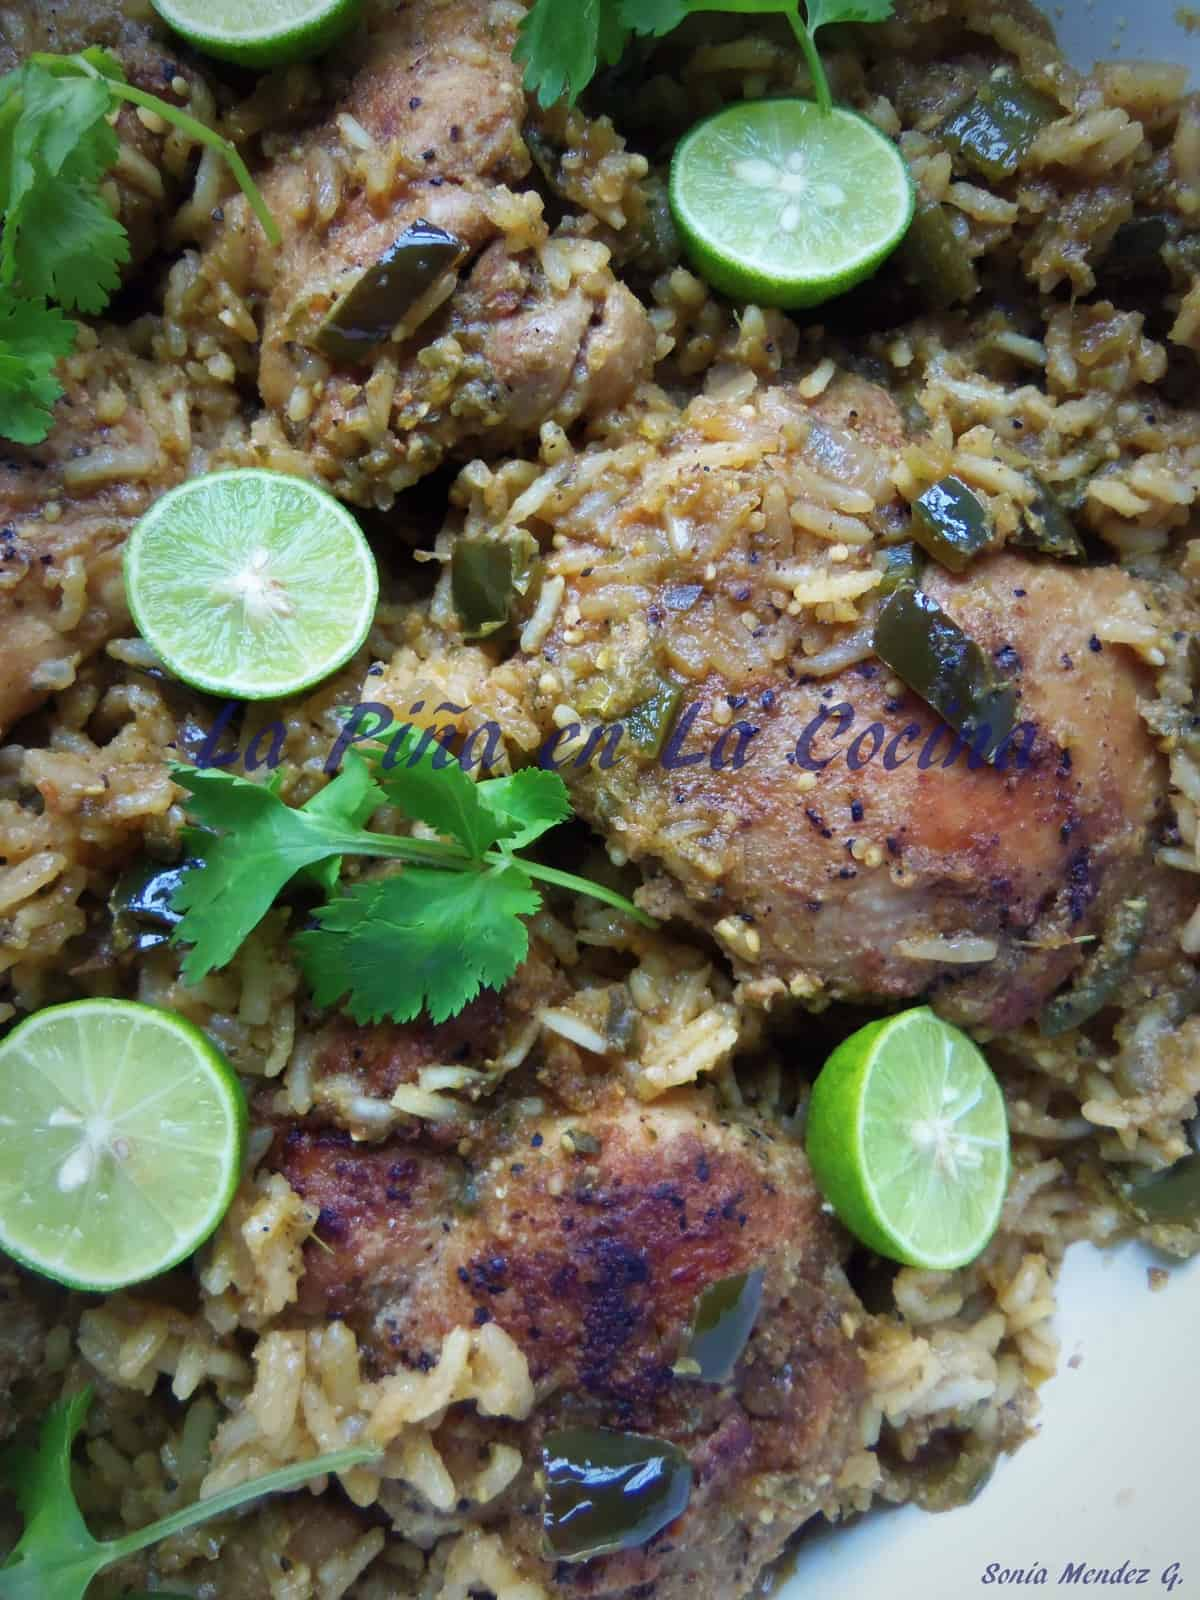 I really enjoy garnishing all my rice dishes with a little fresh lemon or lime and cilantro